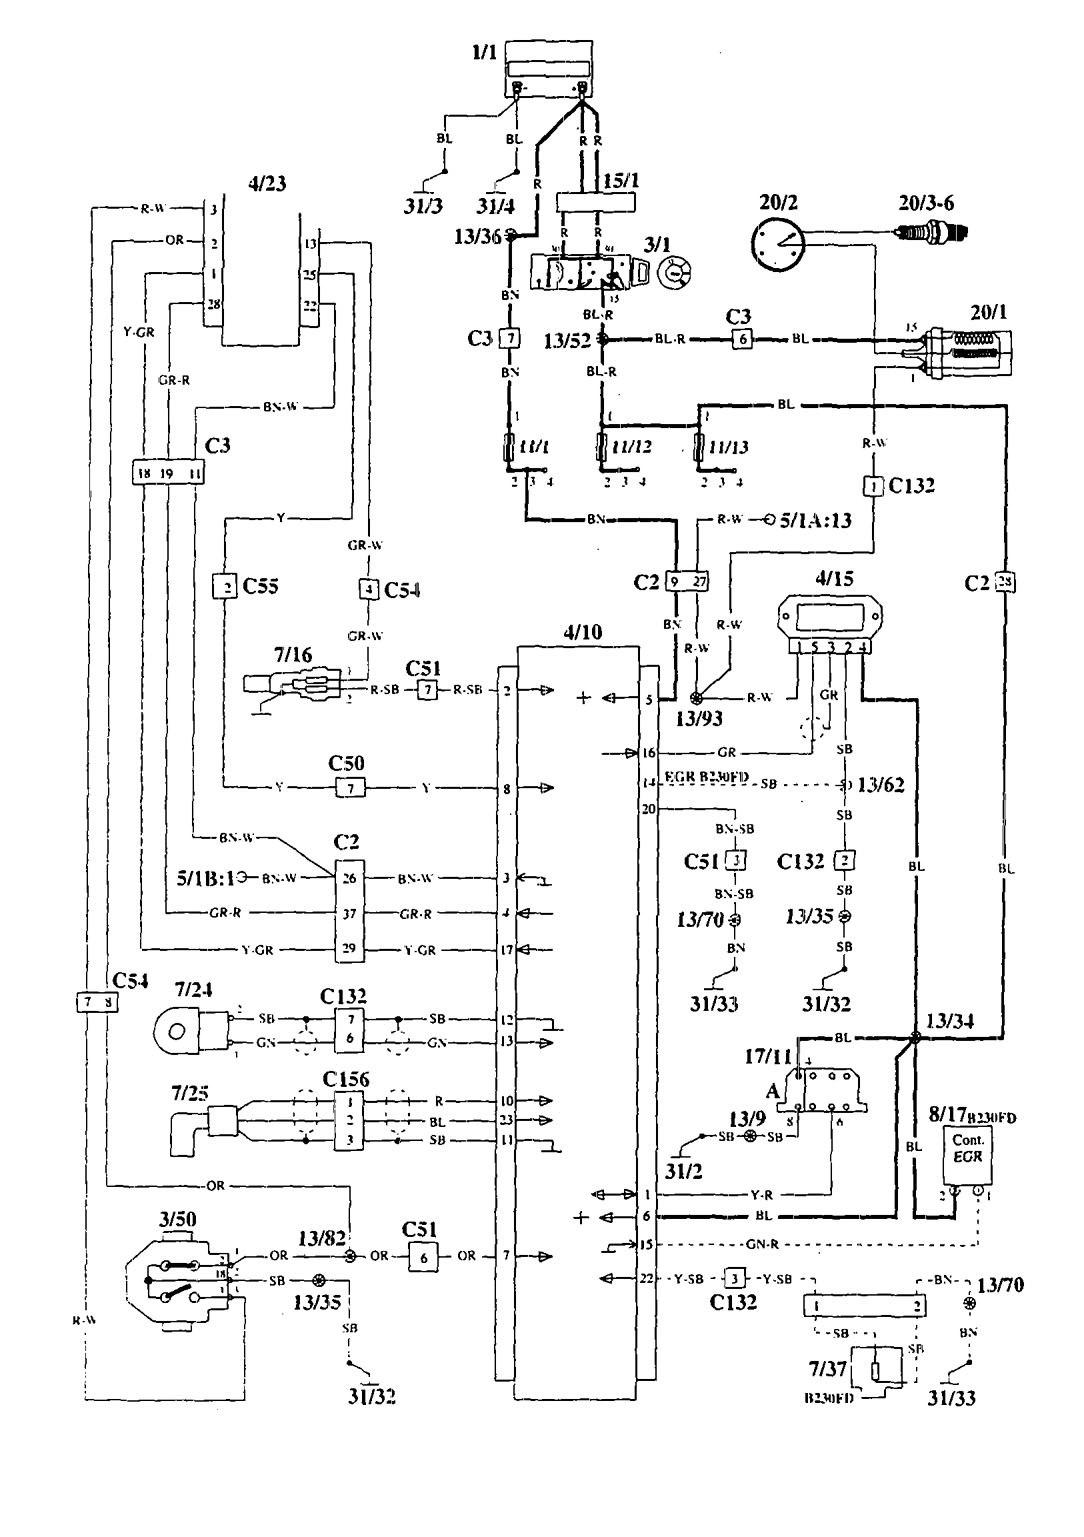 Volvo Wiring Diagram Ignition on 1999 Ezgo Golf Cart Wiring Diagram